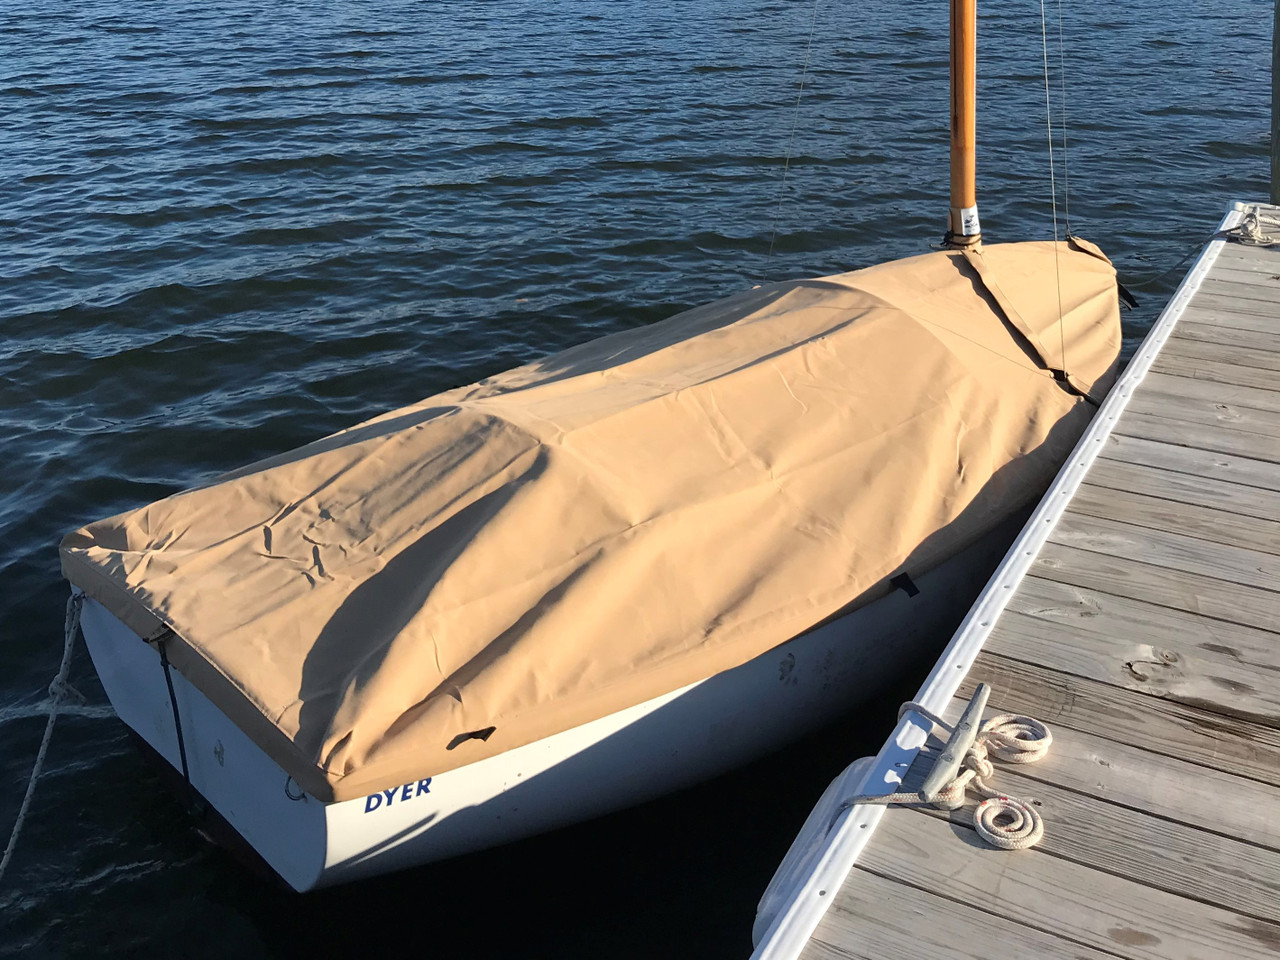 Keep your Dyer Dink dinghy free of leaves and dirt with a Mast Up Flat Cover by SLO Sail and Canvas.